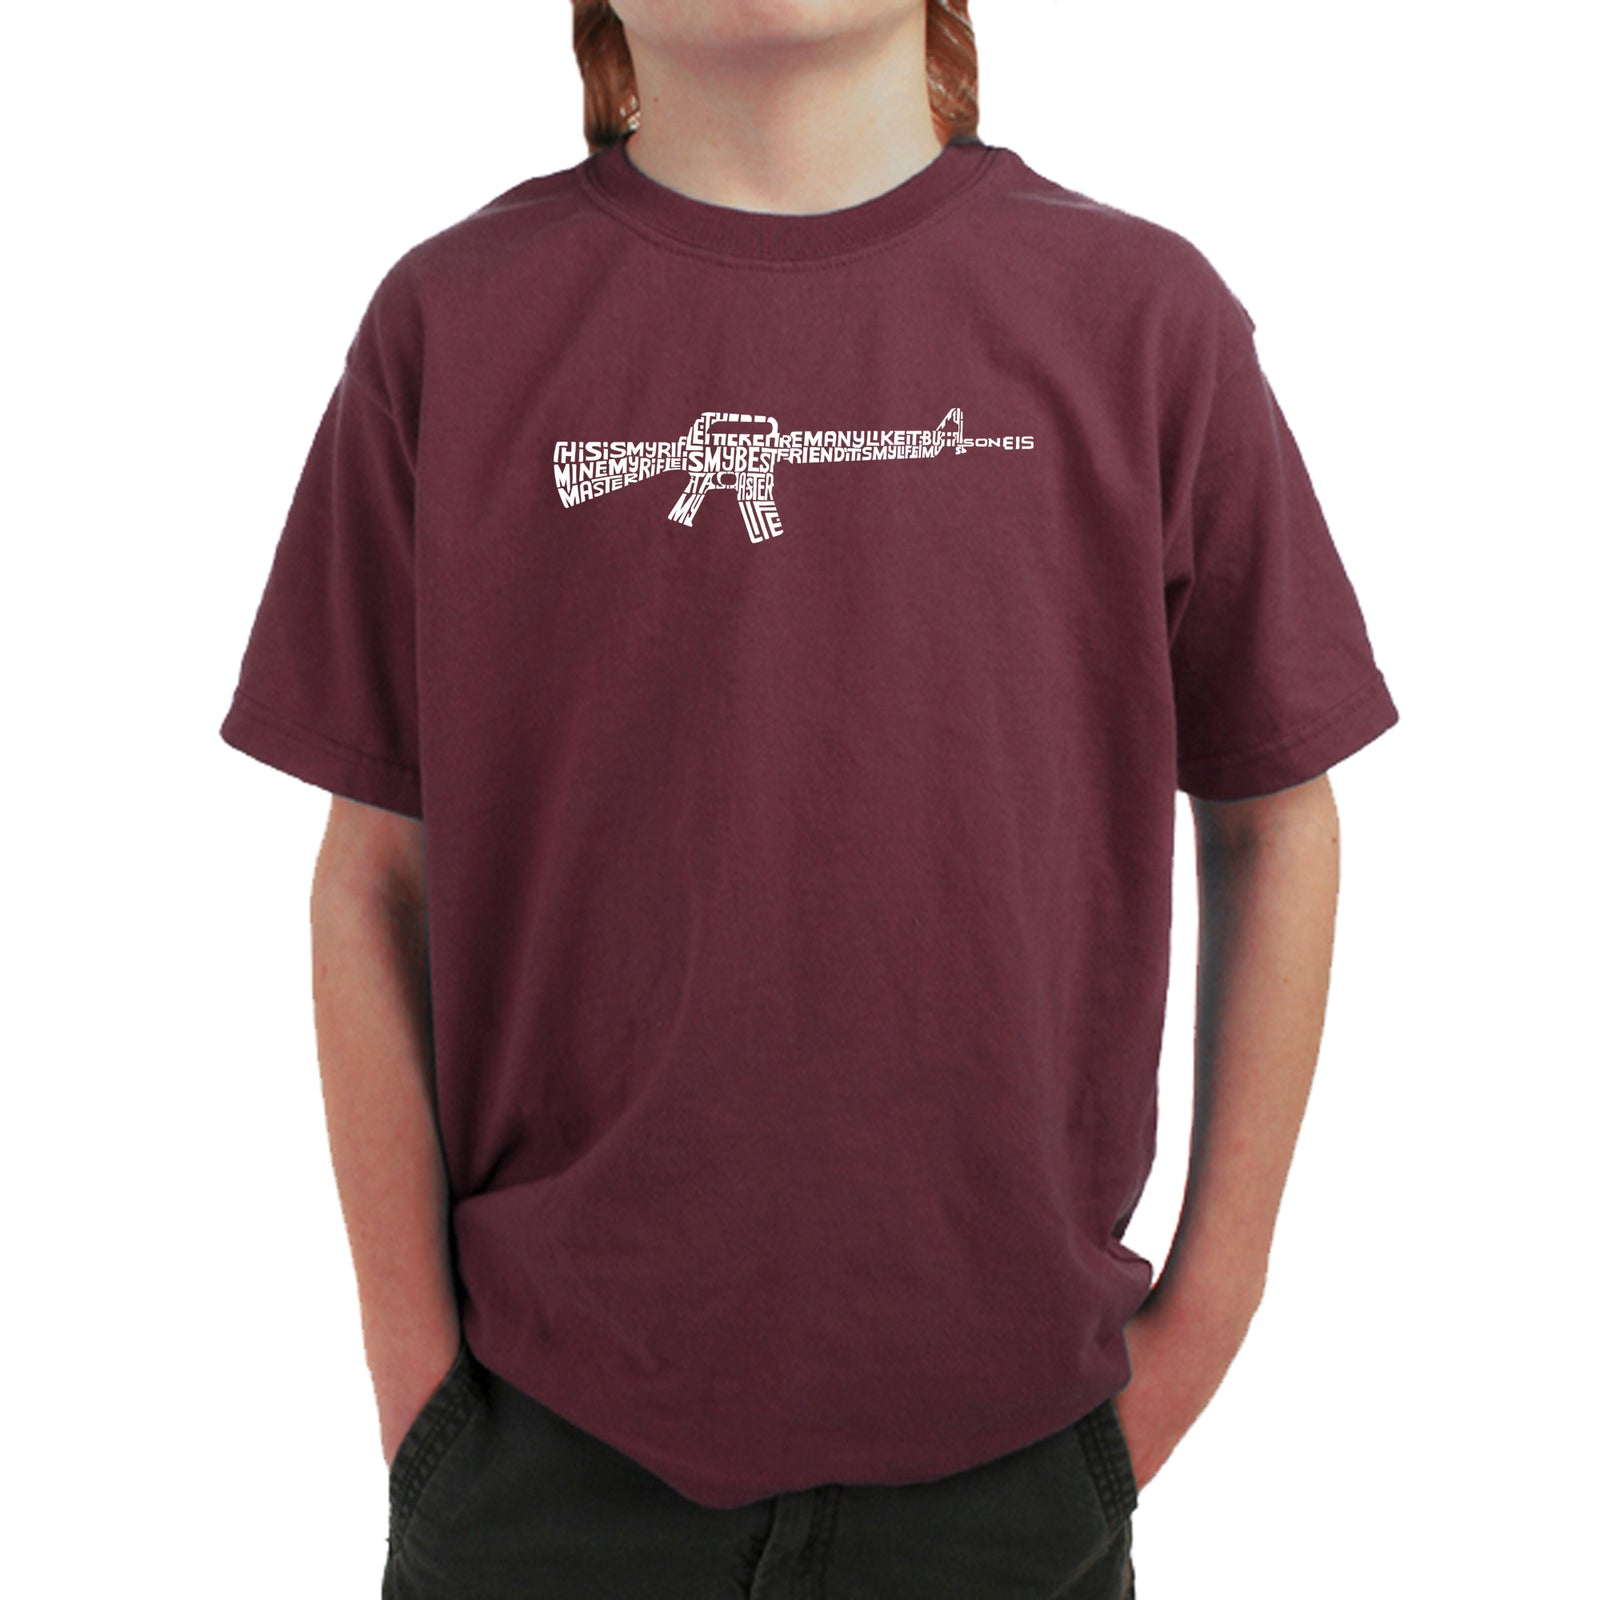 Boy's T-shirt - RIFLEMANS CREED